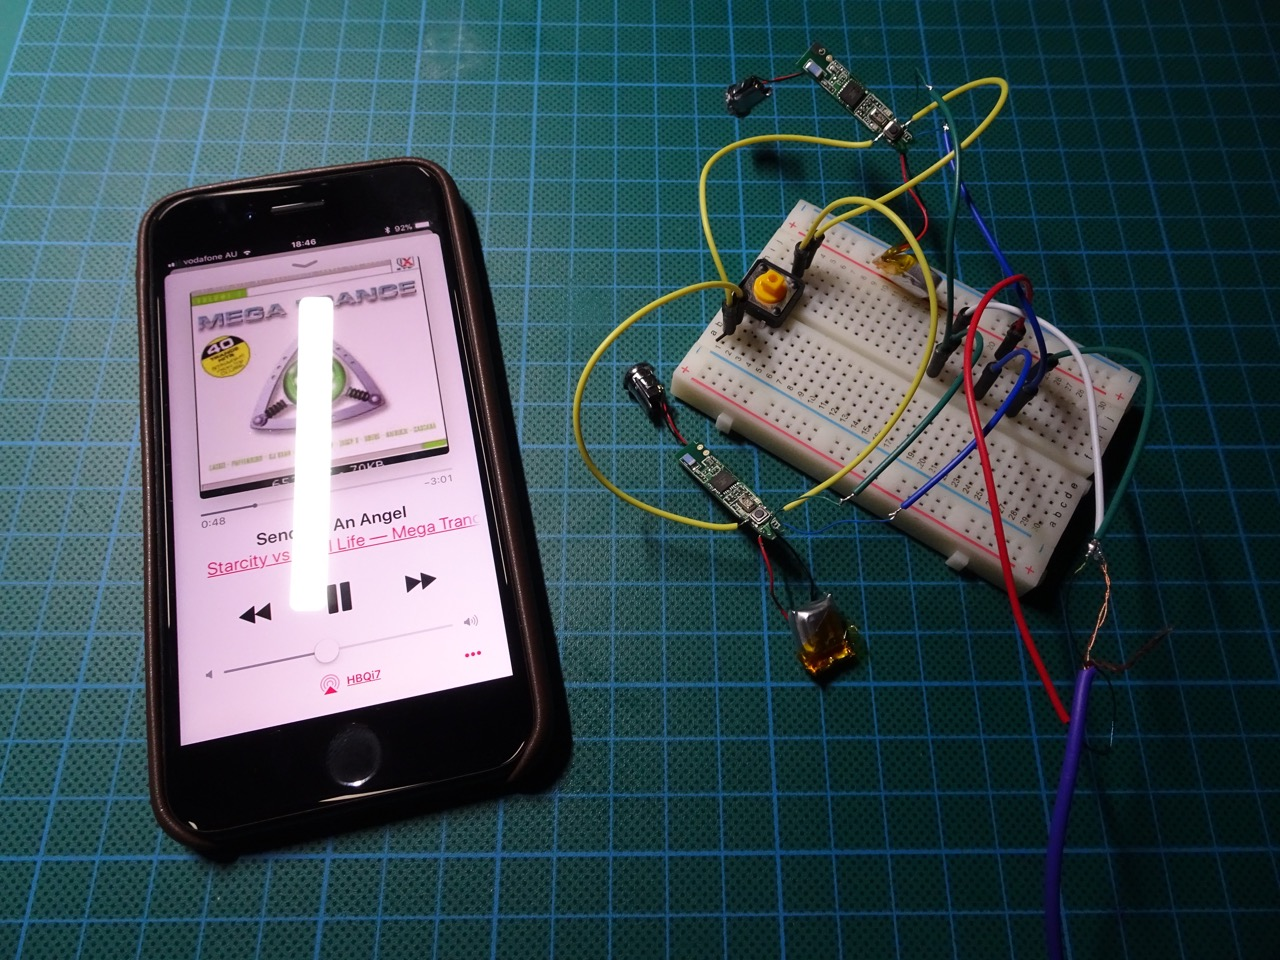 Hacking The Hbq I7 Tws Wireless Headphones To Make A Stereo Basic Circuit And Breadboard Hacks Mods Circuitry Single Switch Was Able Operate Both Of Headphone Circuits Have Them Sync This Encouraging So I Put Together Very Simple